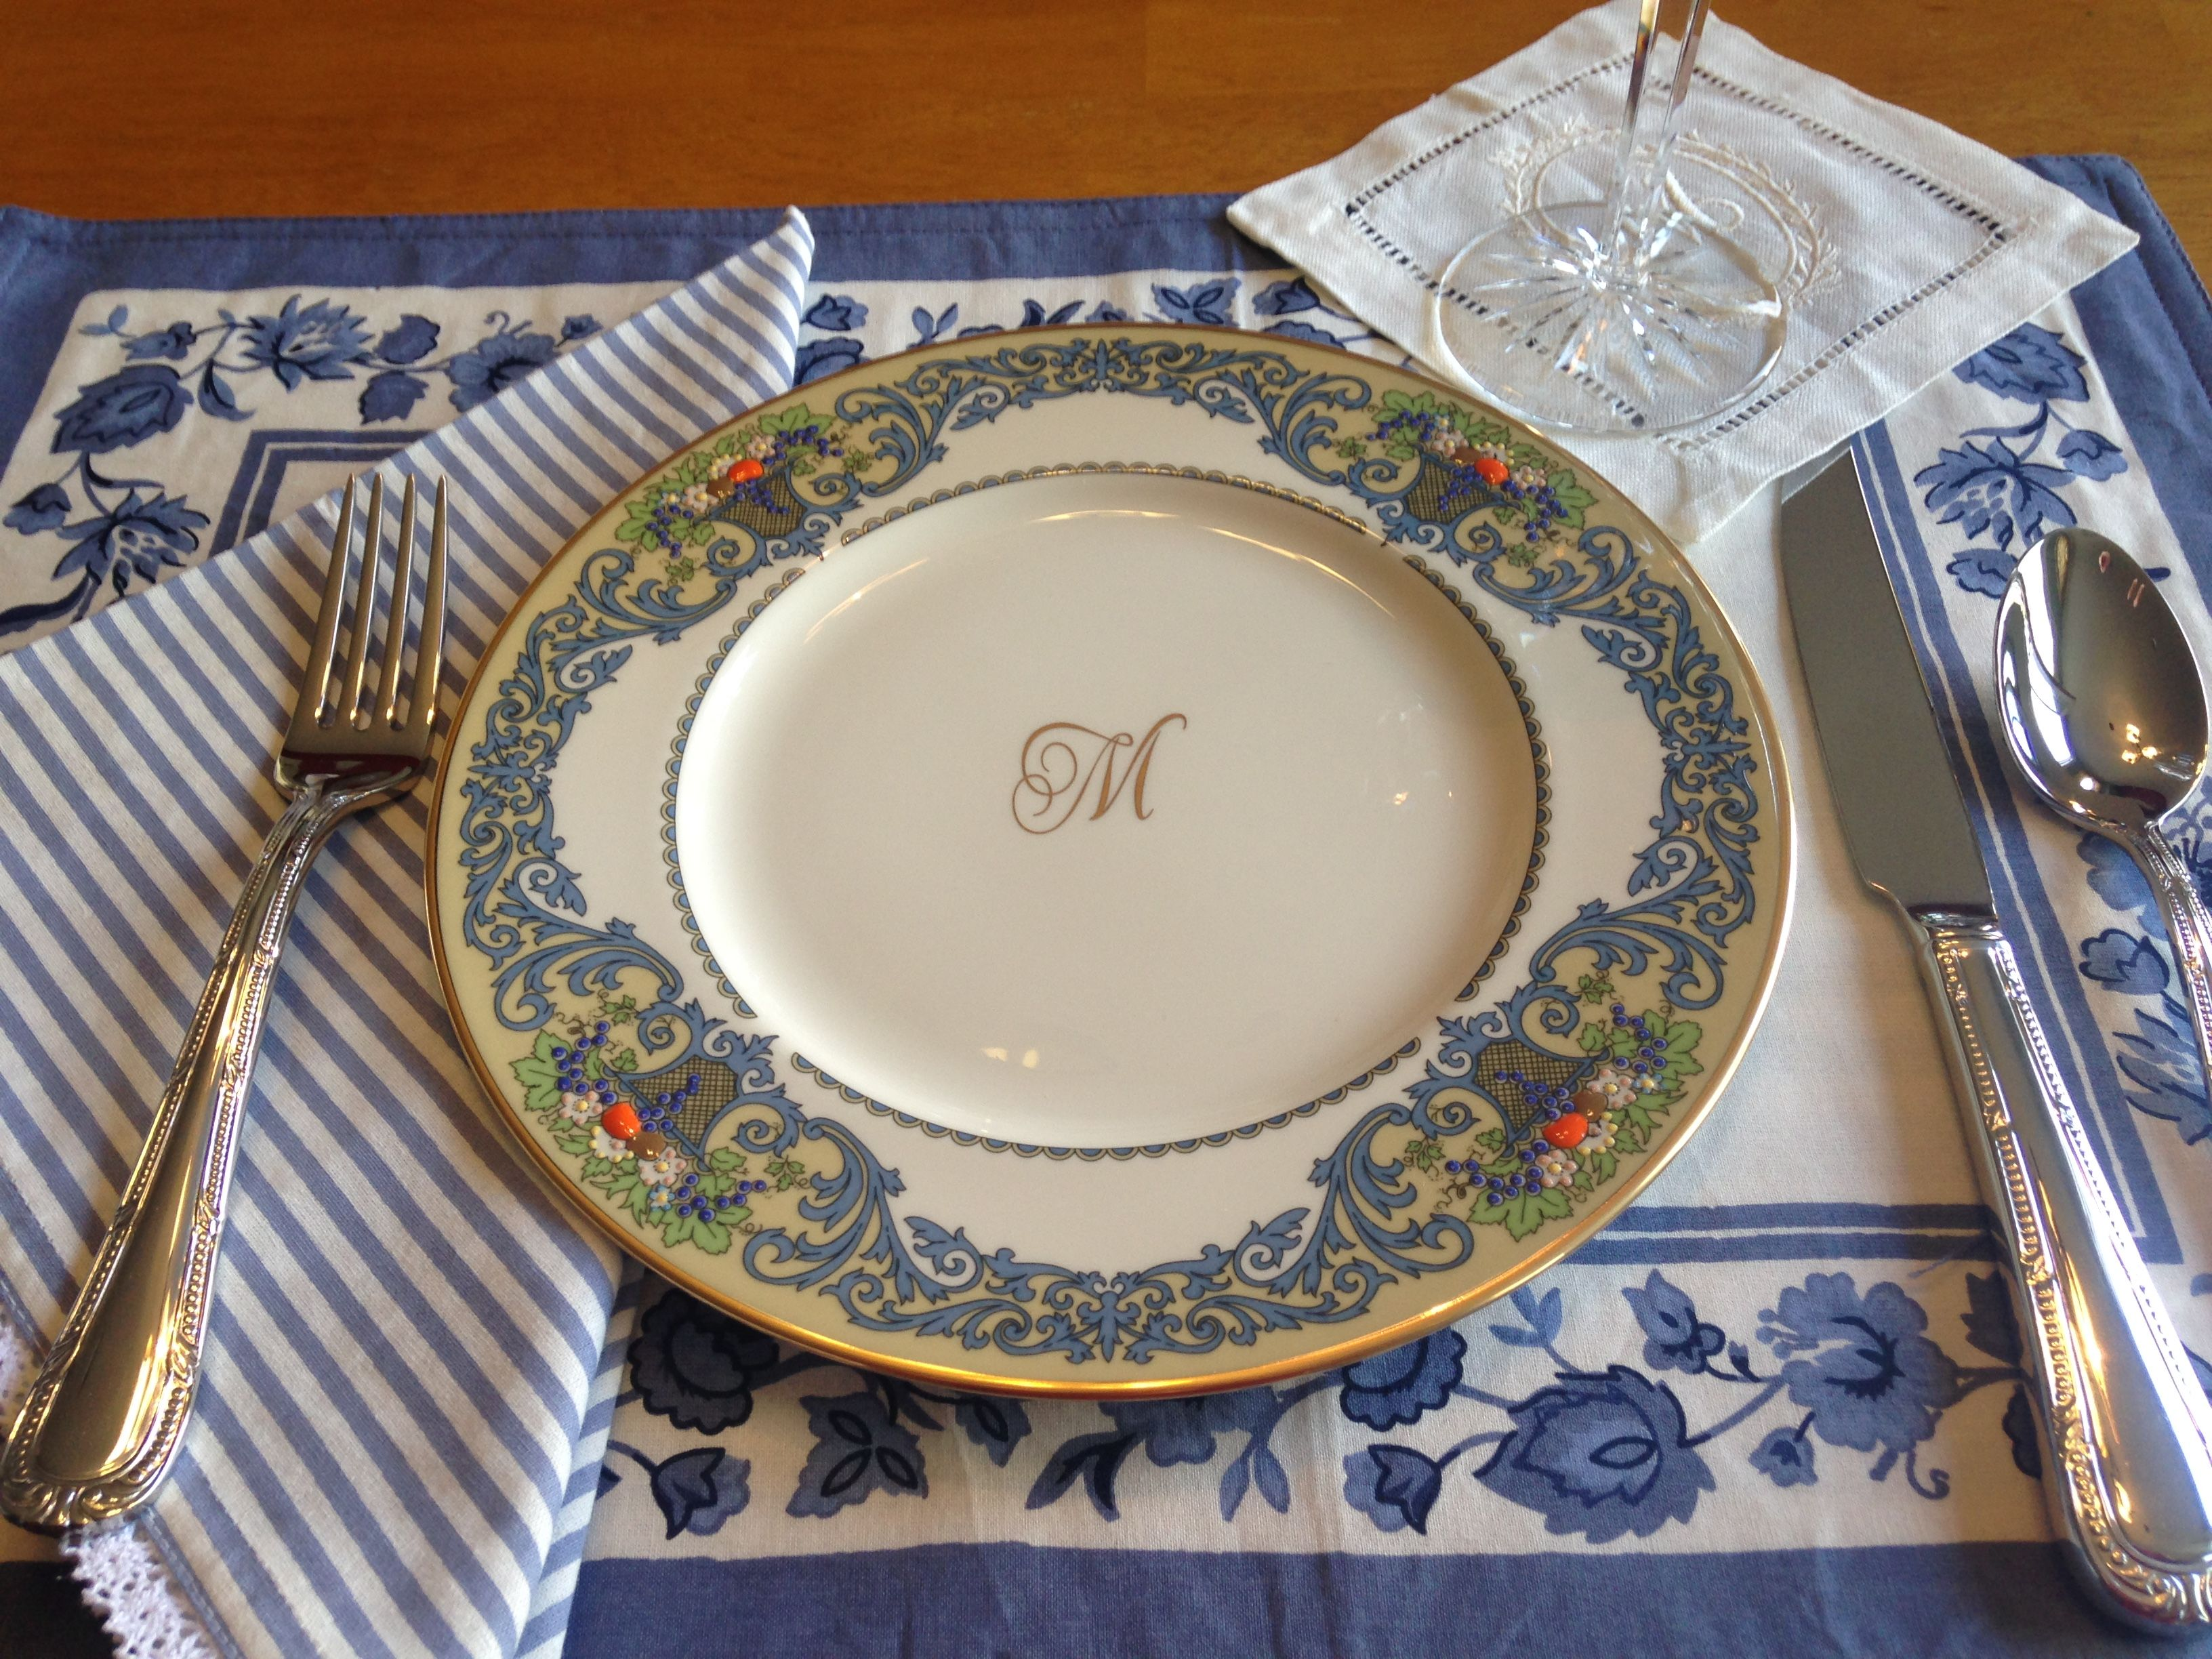 Lenox Autumn Monogrammed luncheon plate Floral blue and cream placemat Blue and white striped lace edged & Lenox Autumn Monogrammed luncheon plate Floral blue and cream ...